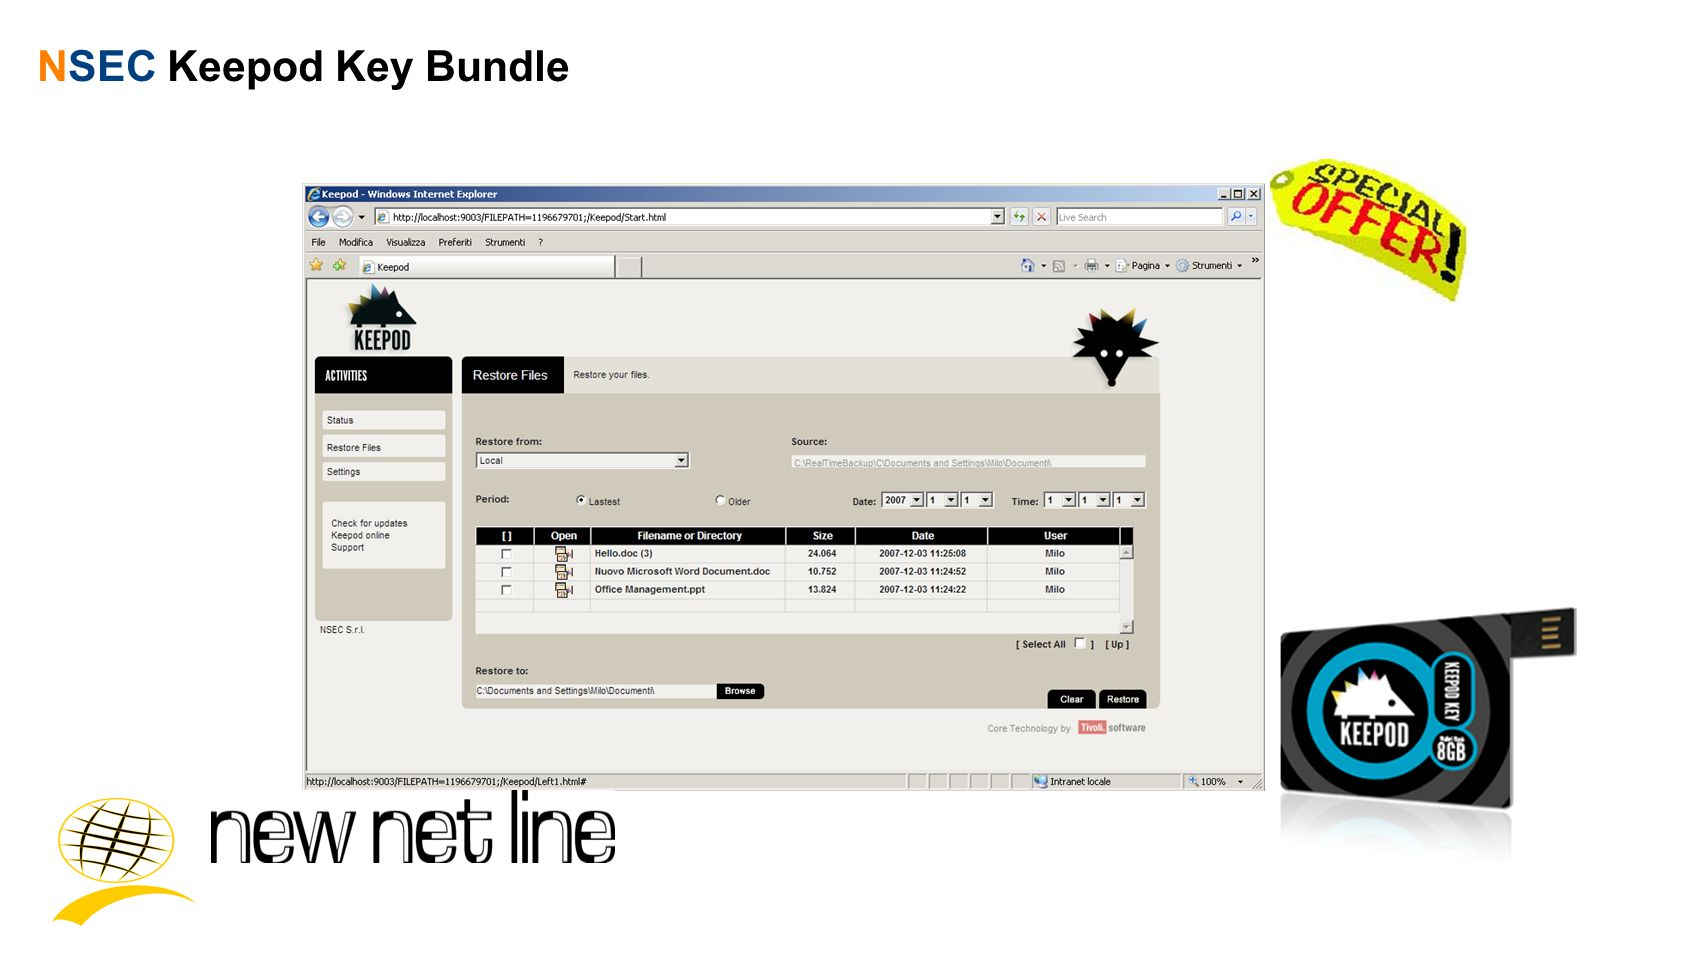 NSEC Keepod Key Bundle